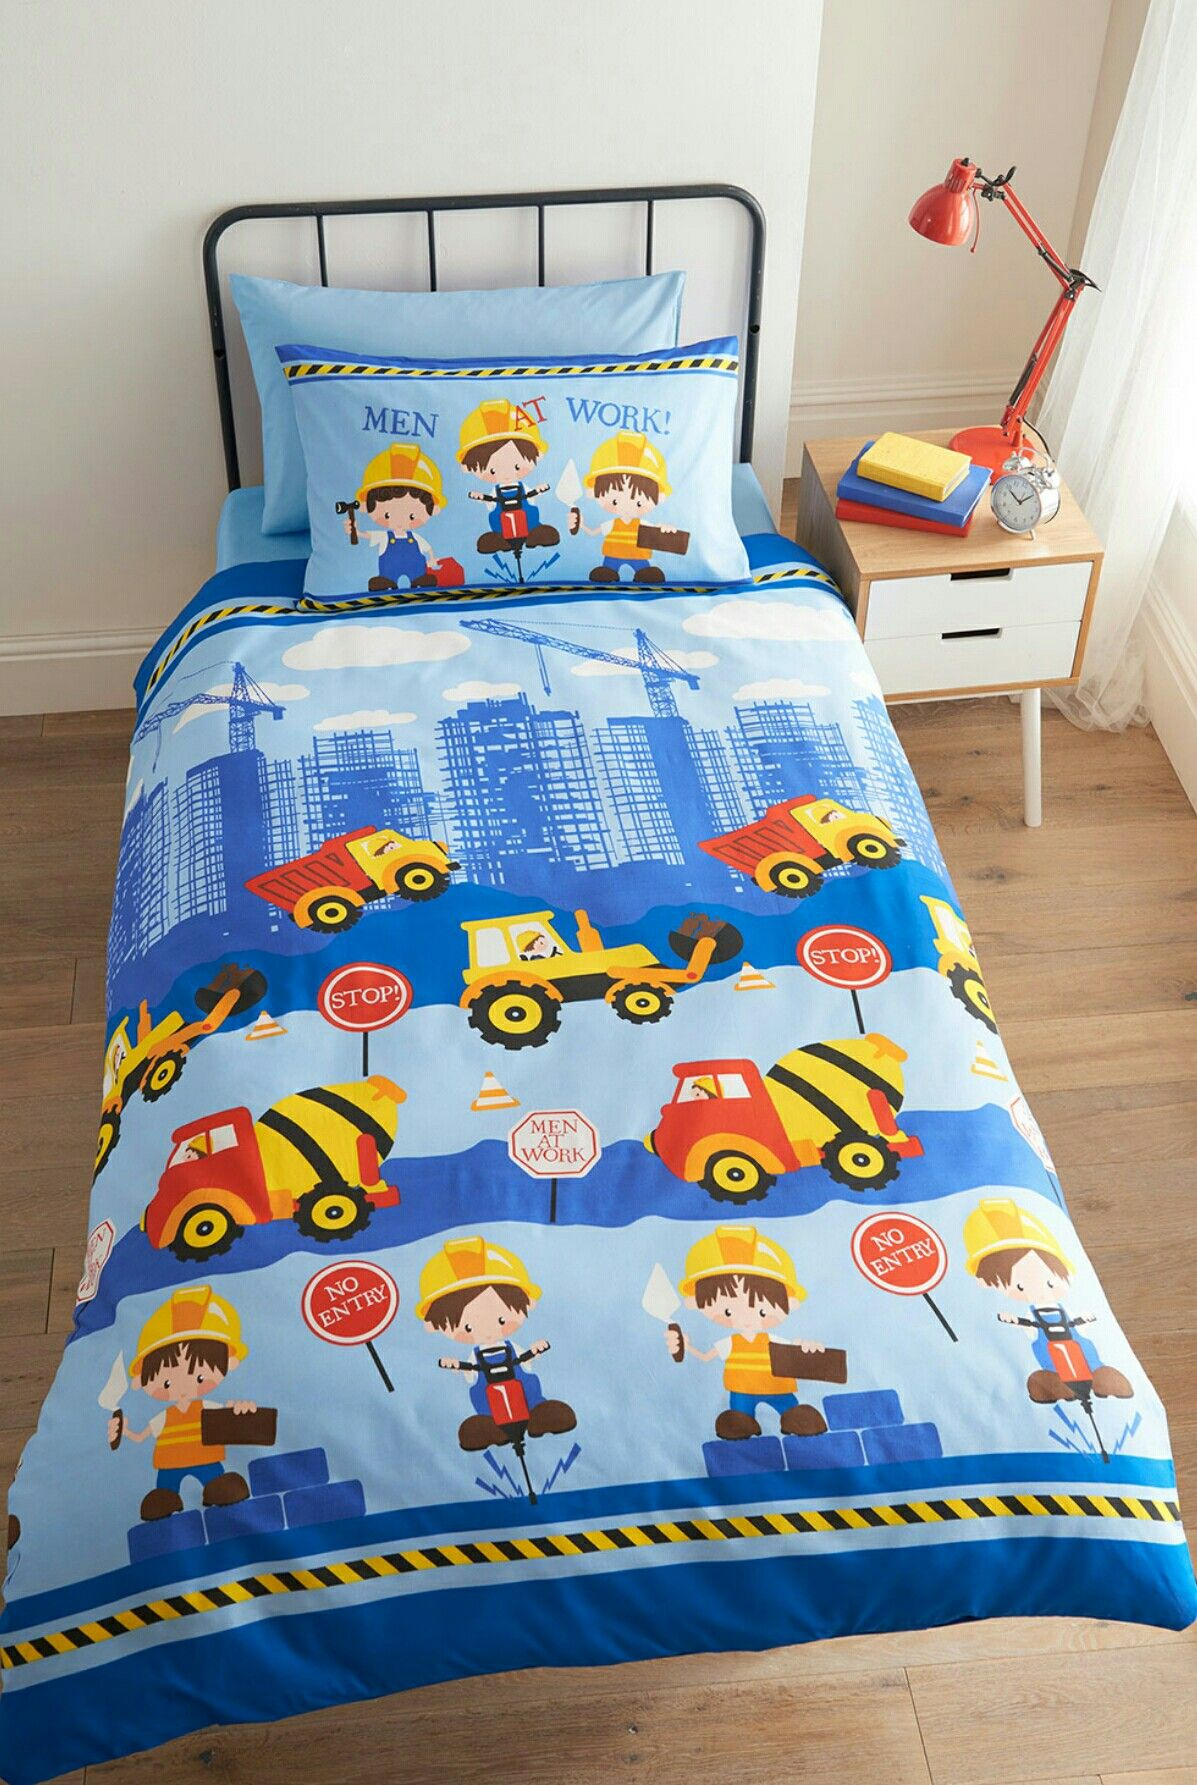 Men At Work Single Duvet Set £12.00 Available in single